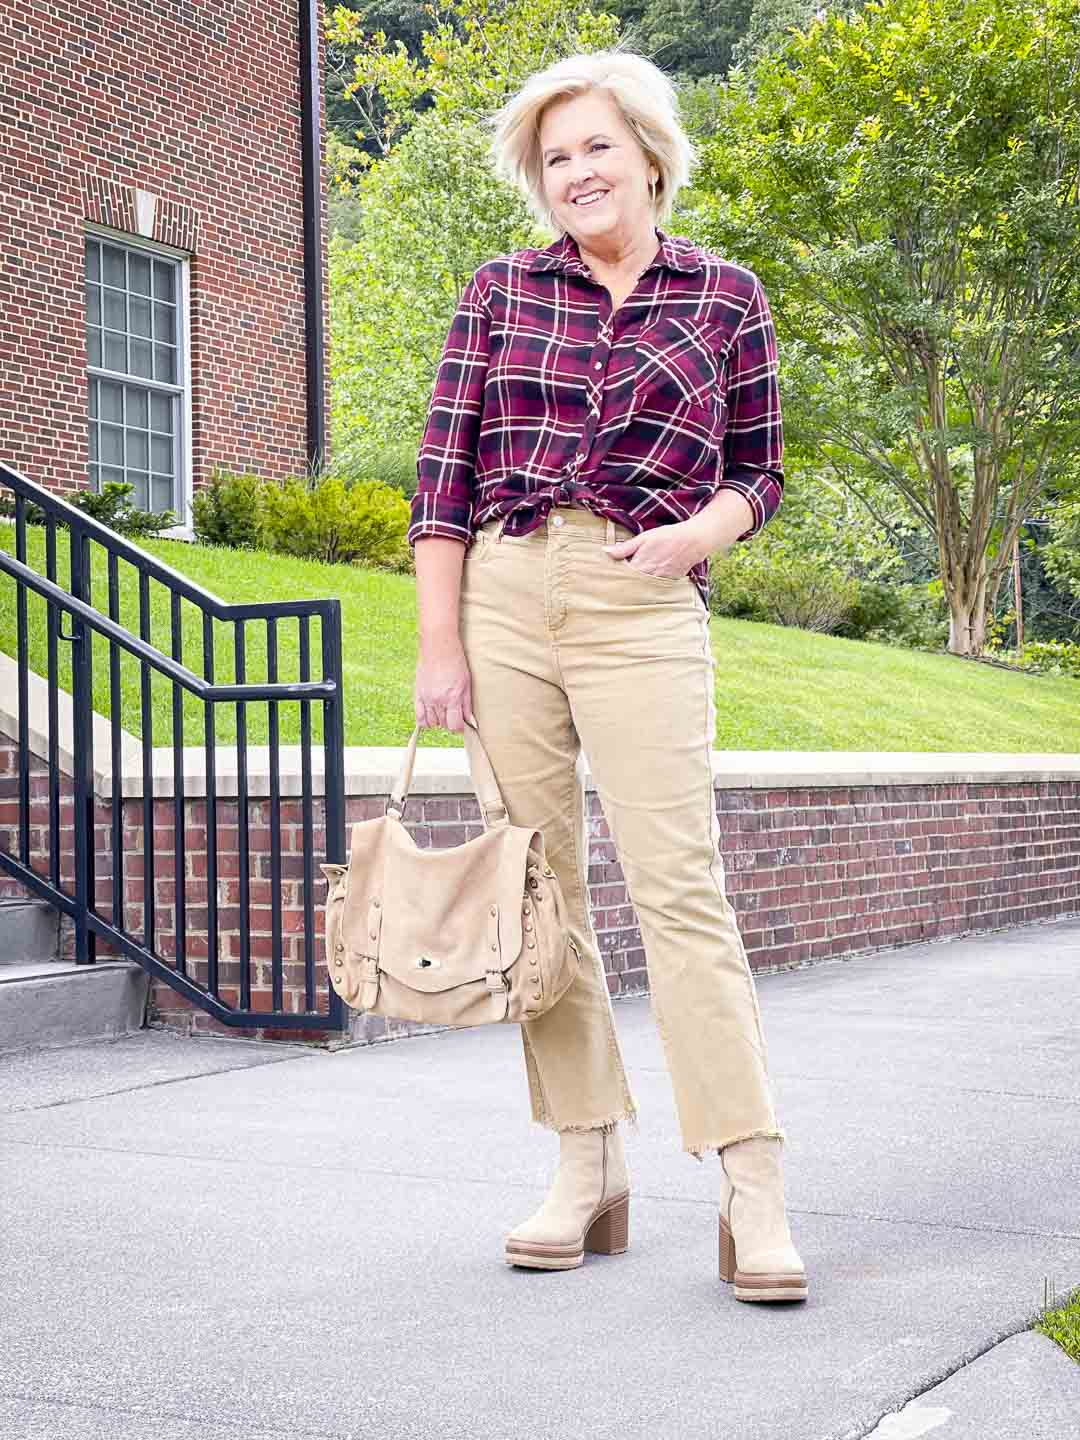 Over 40 Fashion Blogger, Tania Stephens is wearing a wine plaid flannel shirt with crop jeans to show how to get the most out of your wardrobe